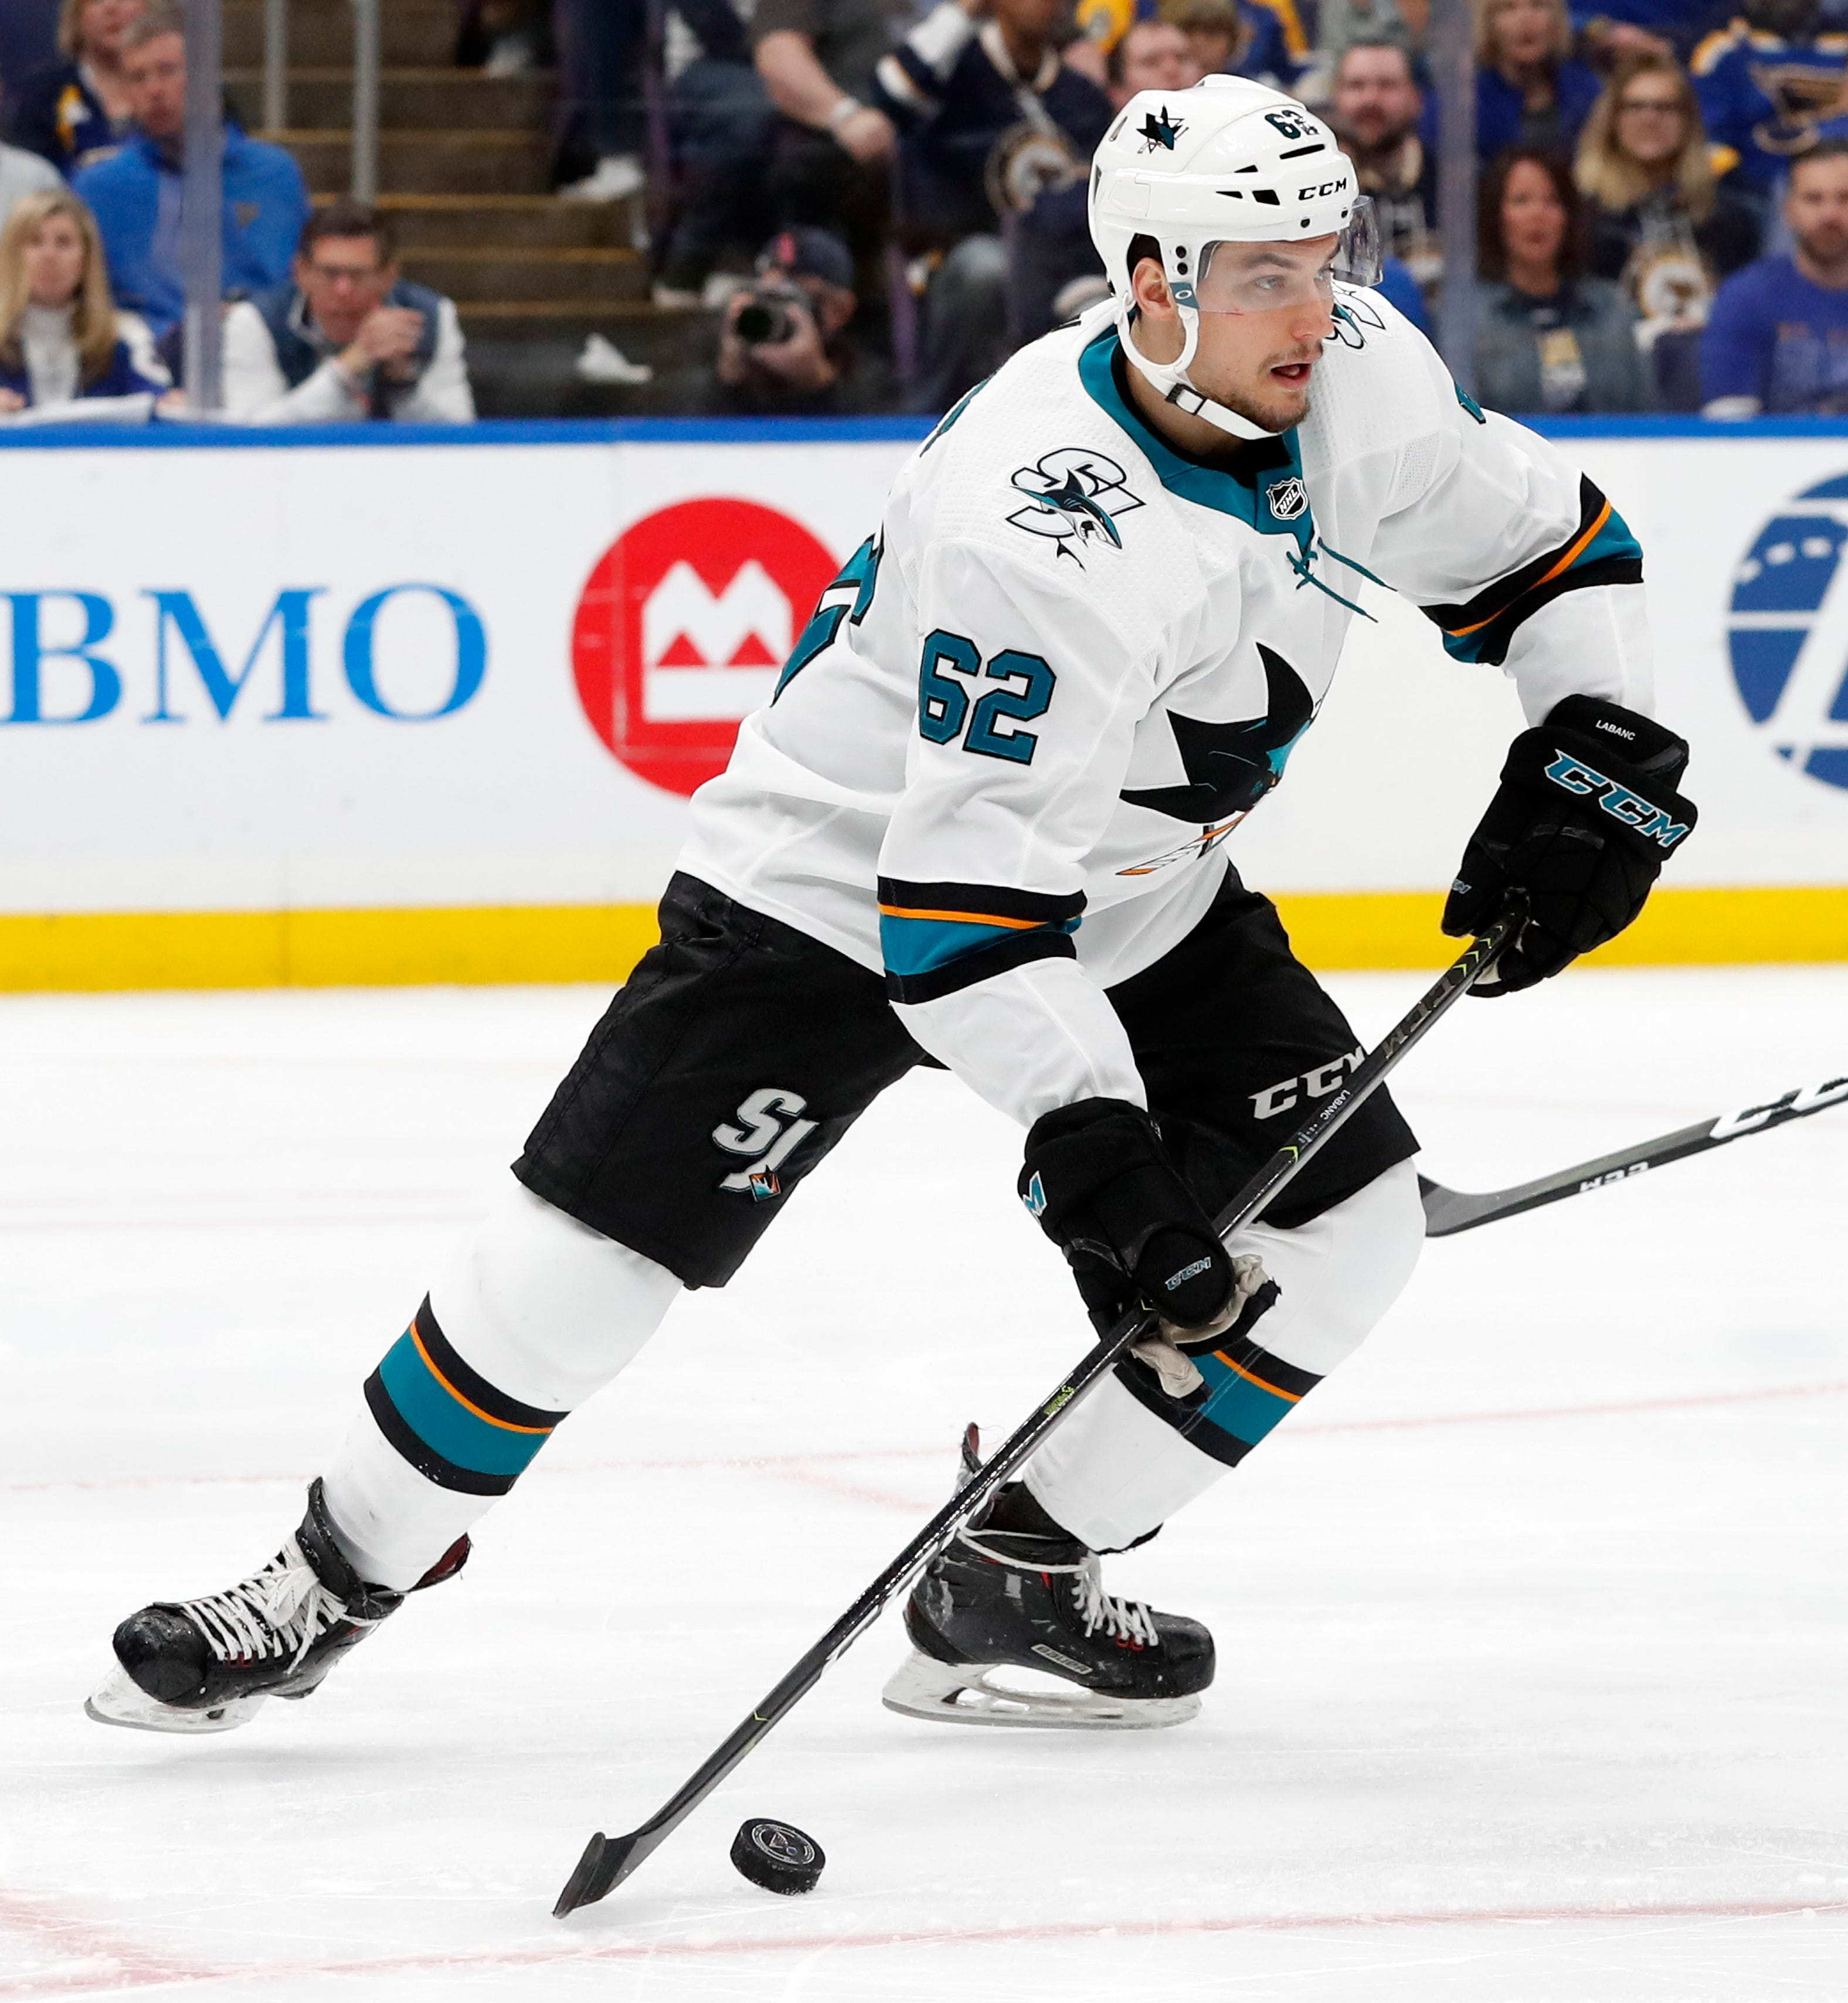 Sharks re-sign Kevin Labanc to 1-year, $1 million deal